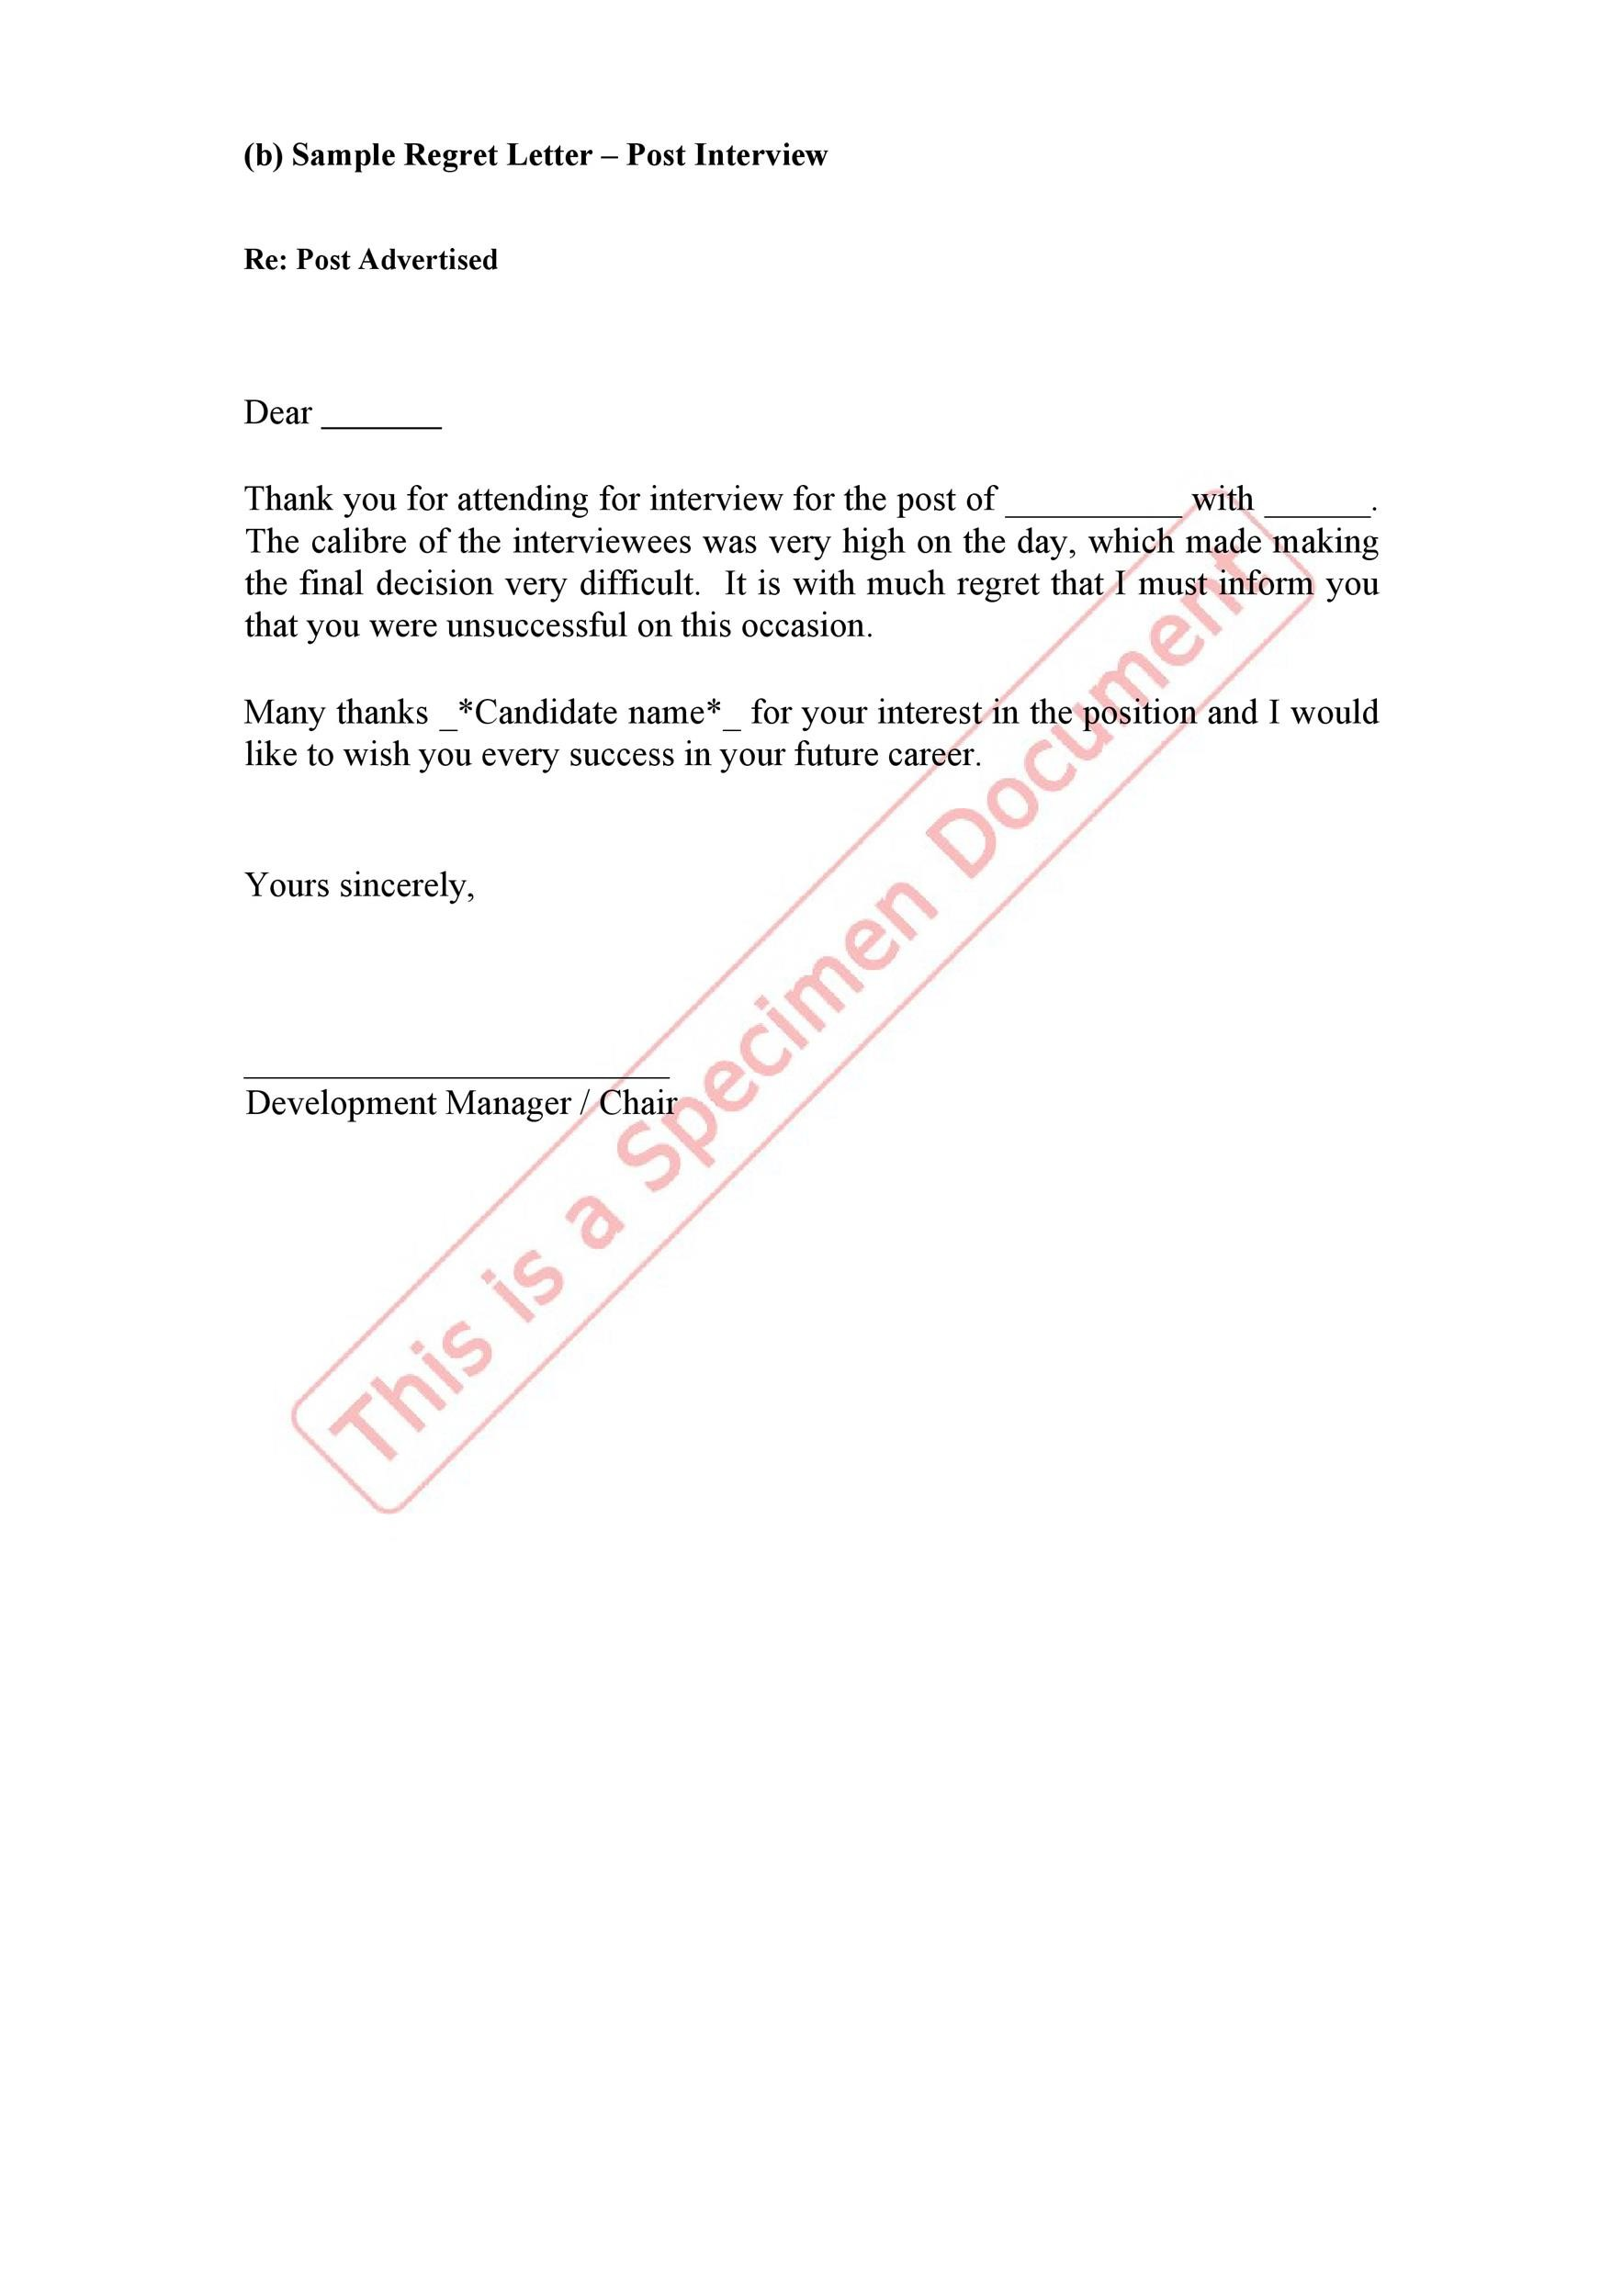 39 Job Rejection Letter Templates  Samples - Template Lab